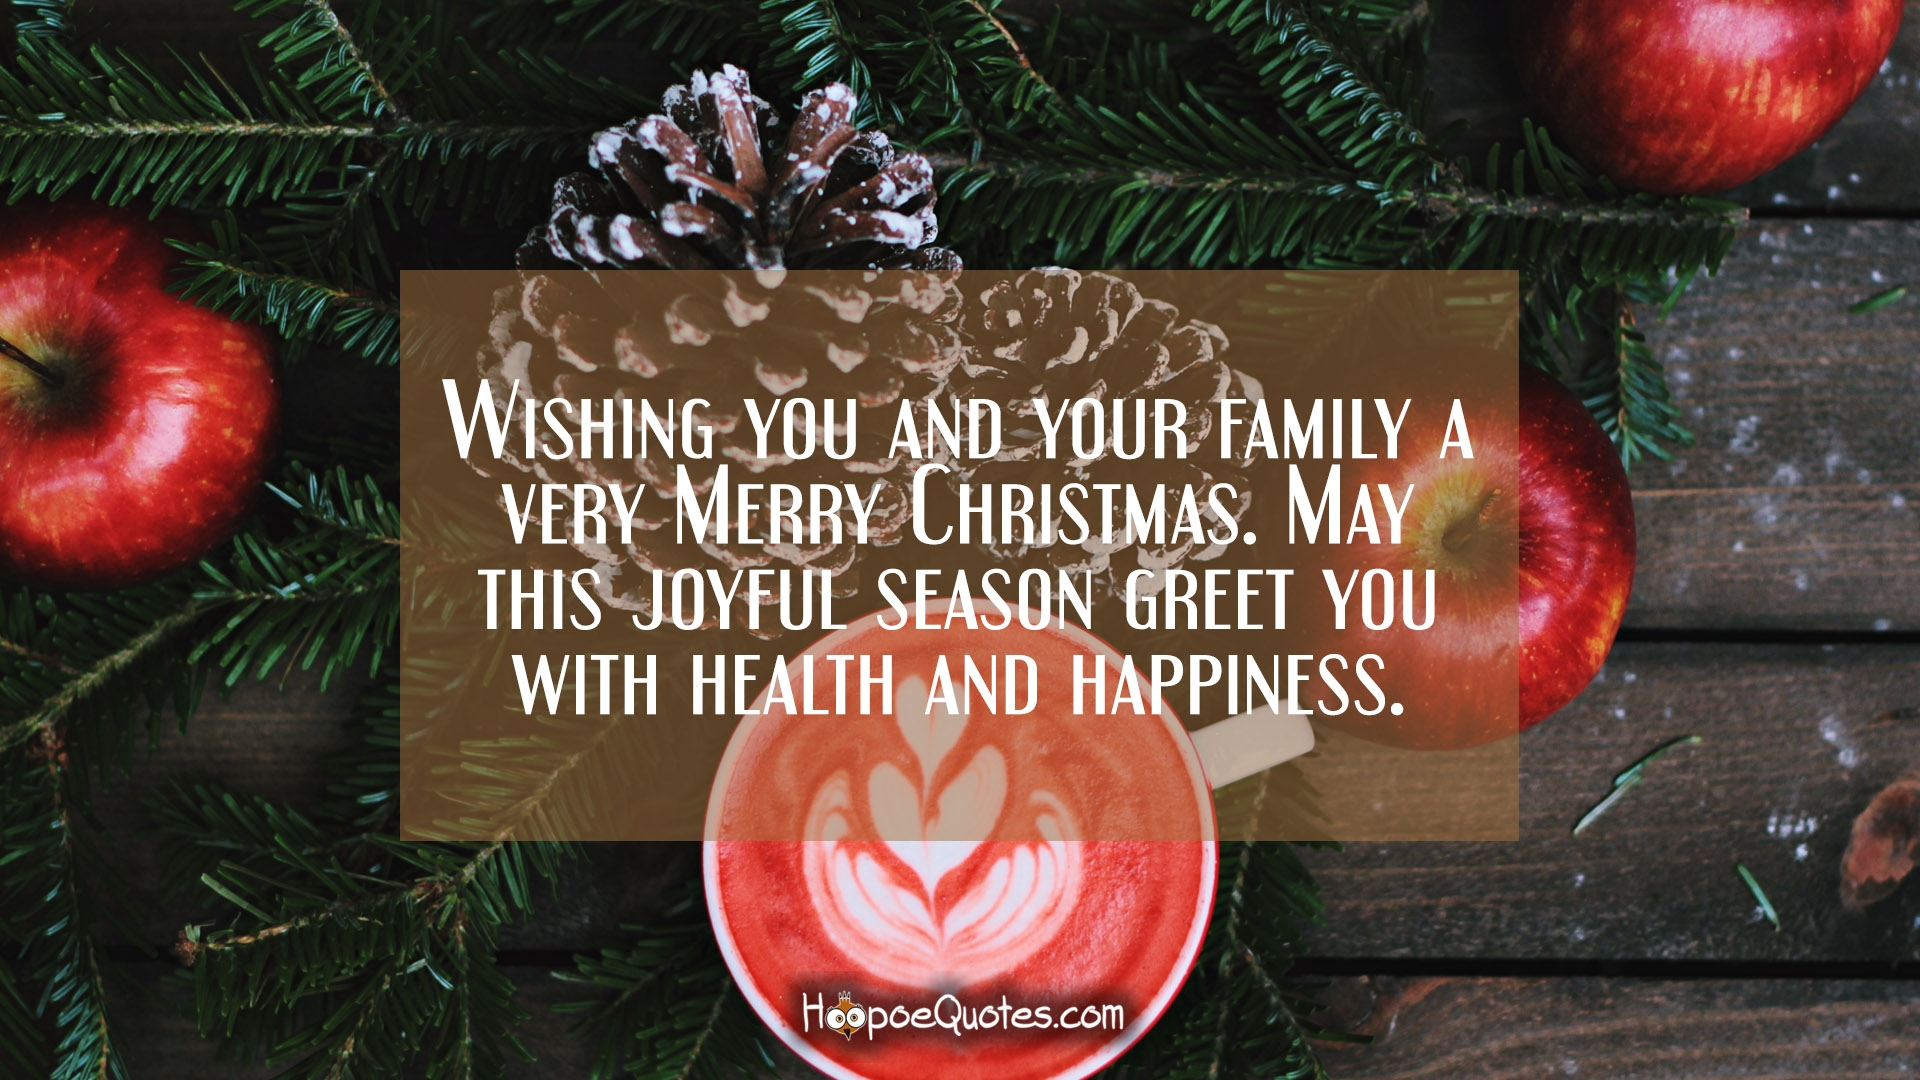 Wishing You And Your Family A Very Merry Christmas May This Joyful